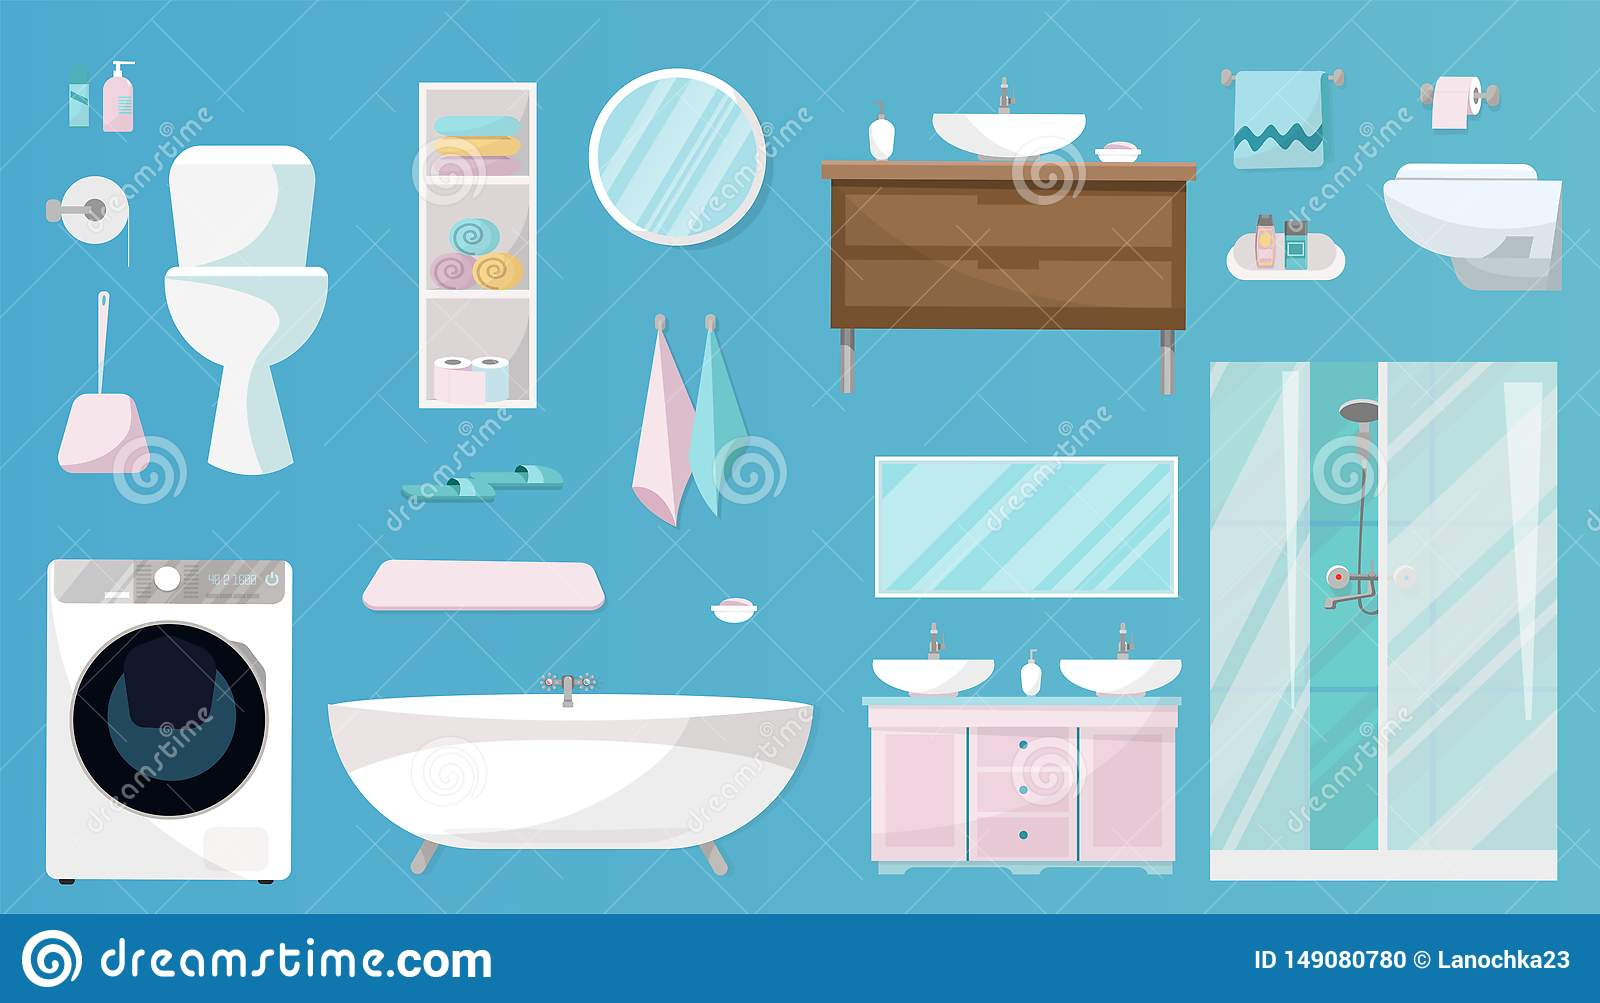 Bathroom set of Furniture, toiletries, sanitation, equipment and articles of hygiene for the bathroom. Sanitary ware set isolated